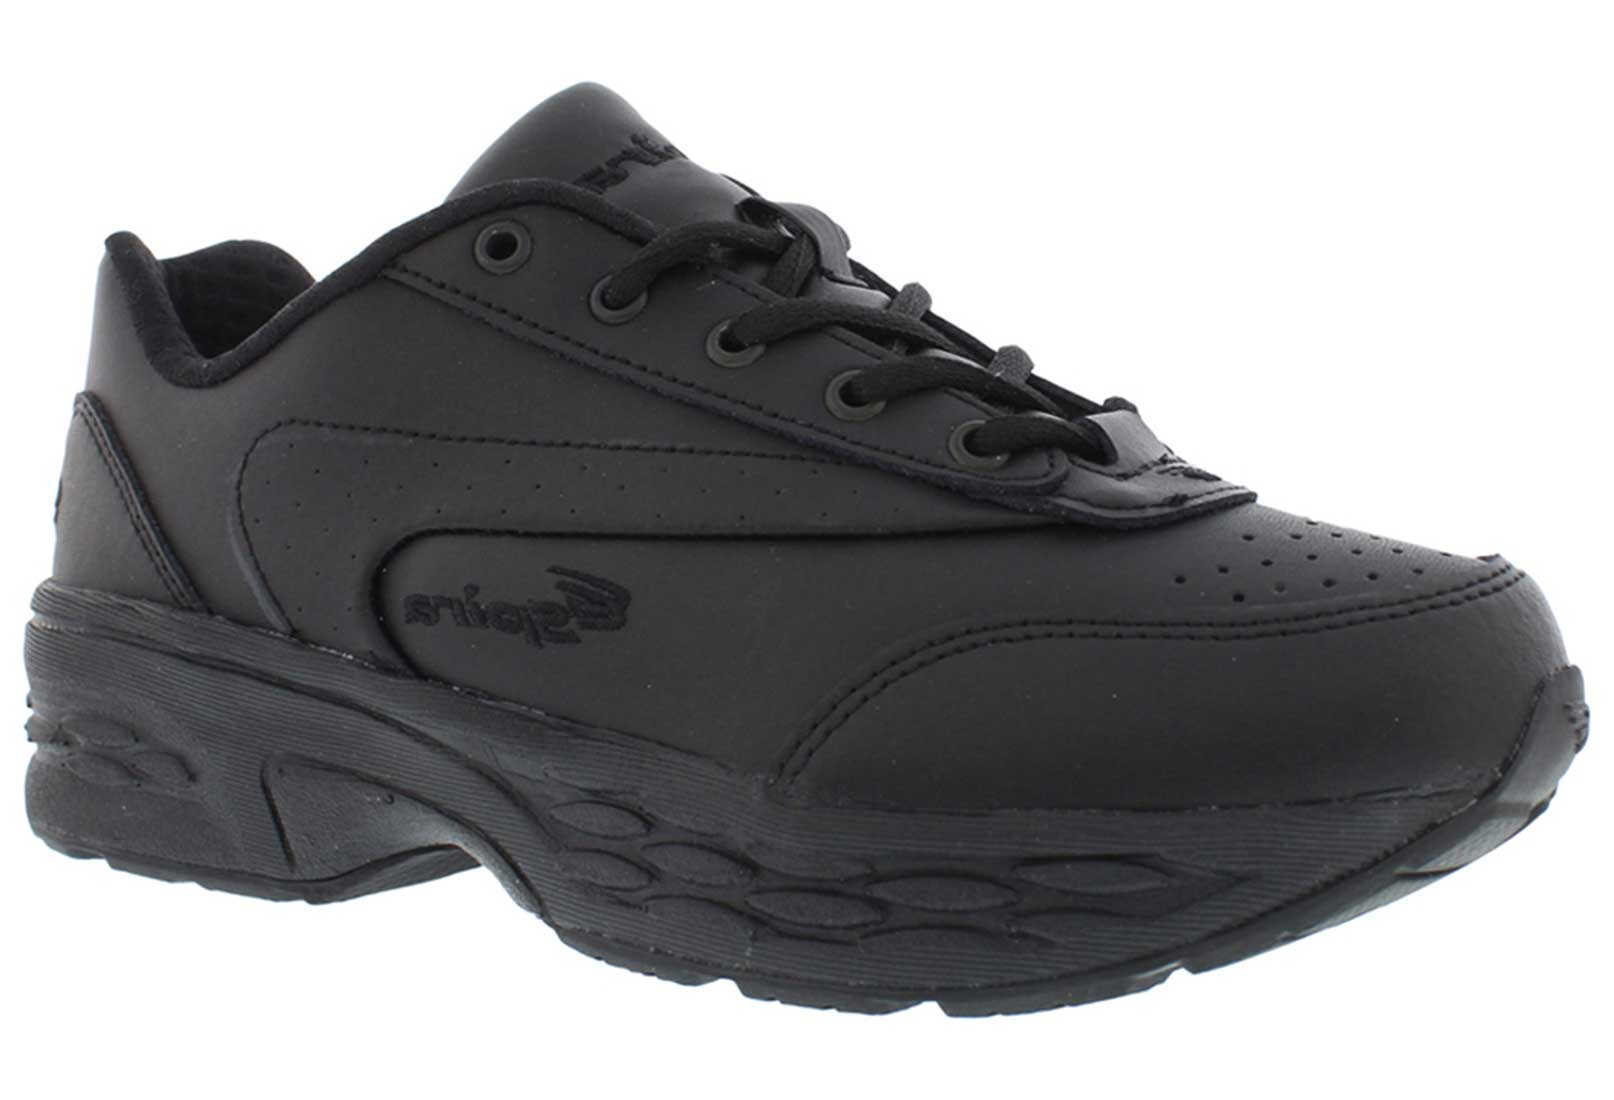 Spira Footwear - Women's Classic Walker Walking Shoe